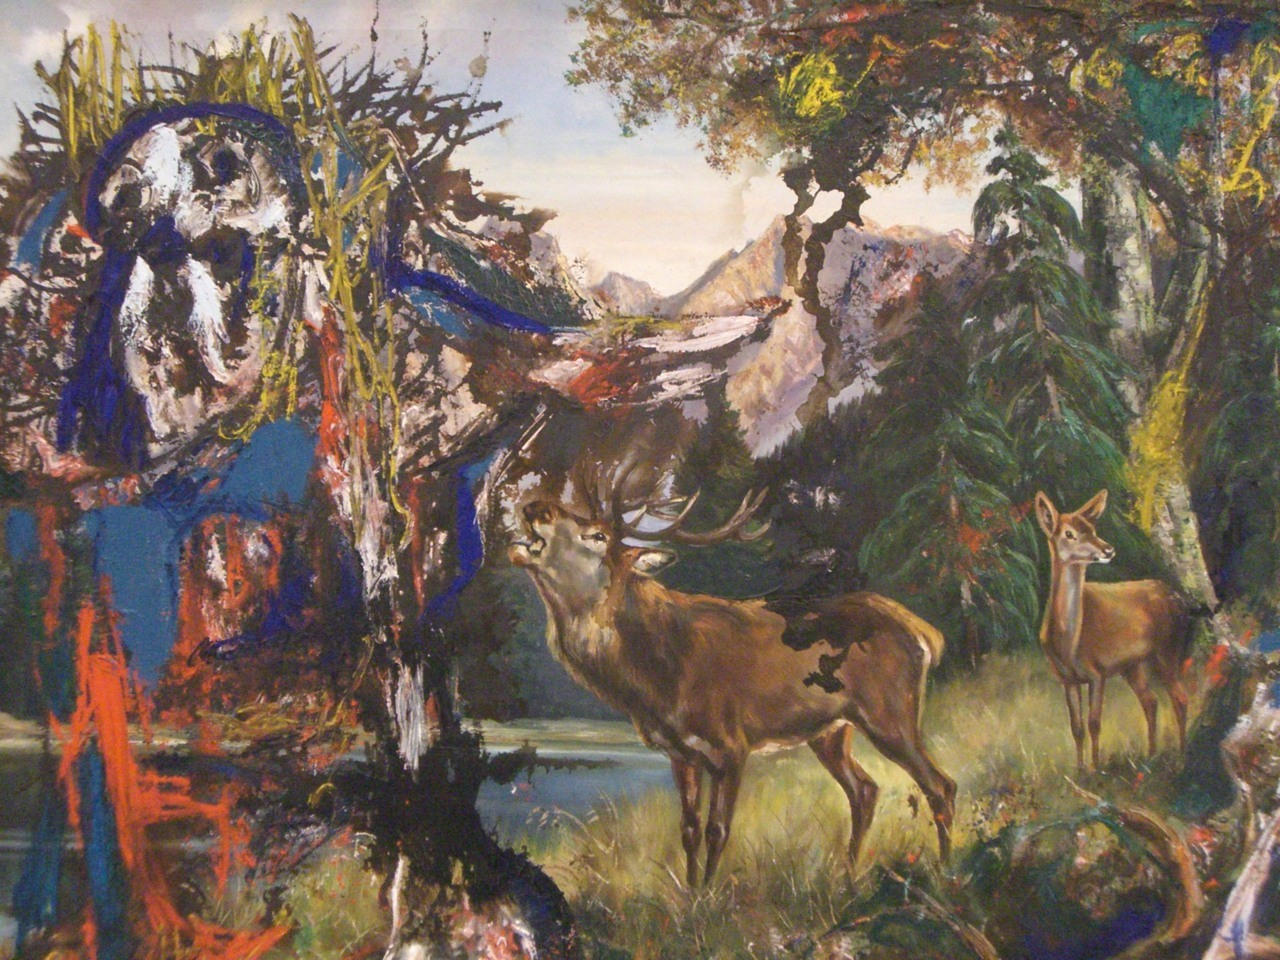 cavetocanvas:  Asger Jorn, Deer Rut in Wilden Kaiser, 1960